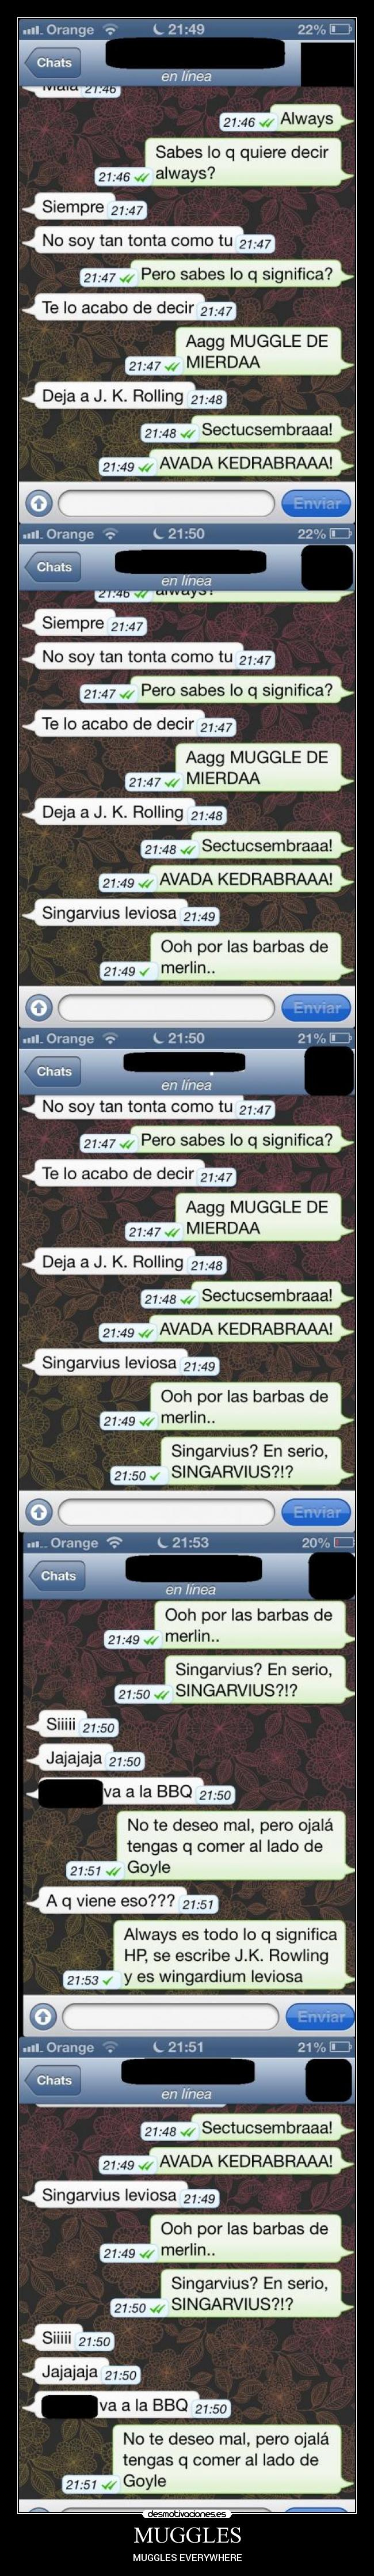 MUGGLES - MUGGLES EVERYWHERE